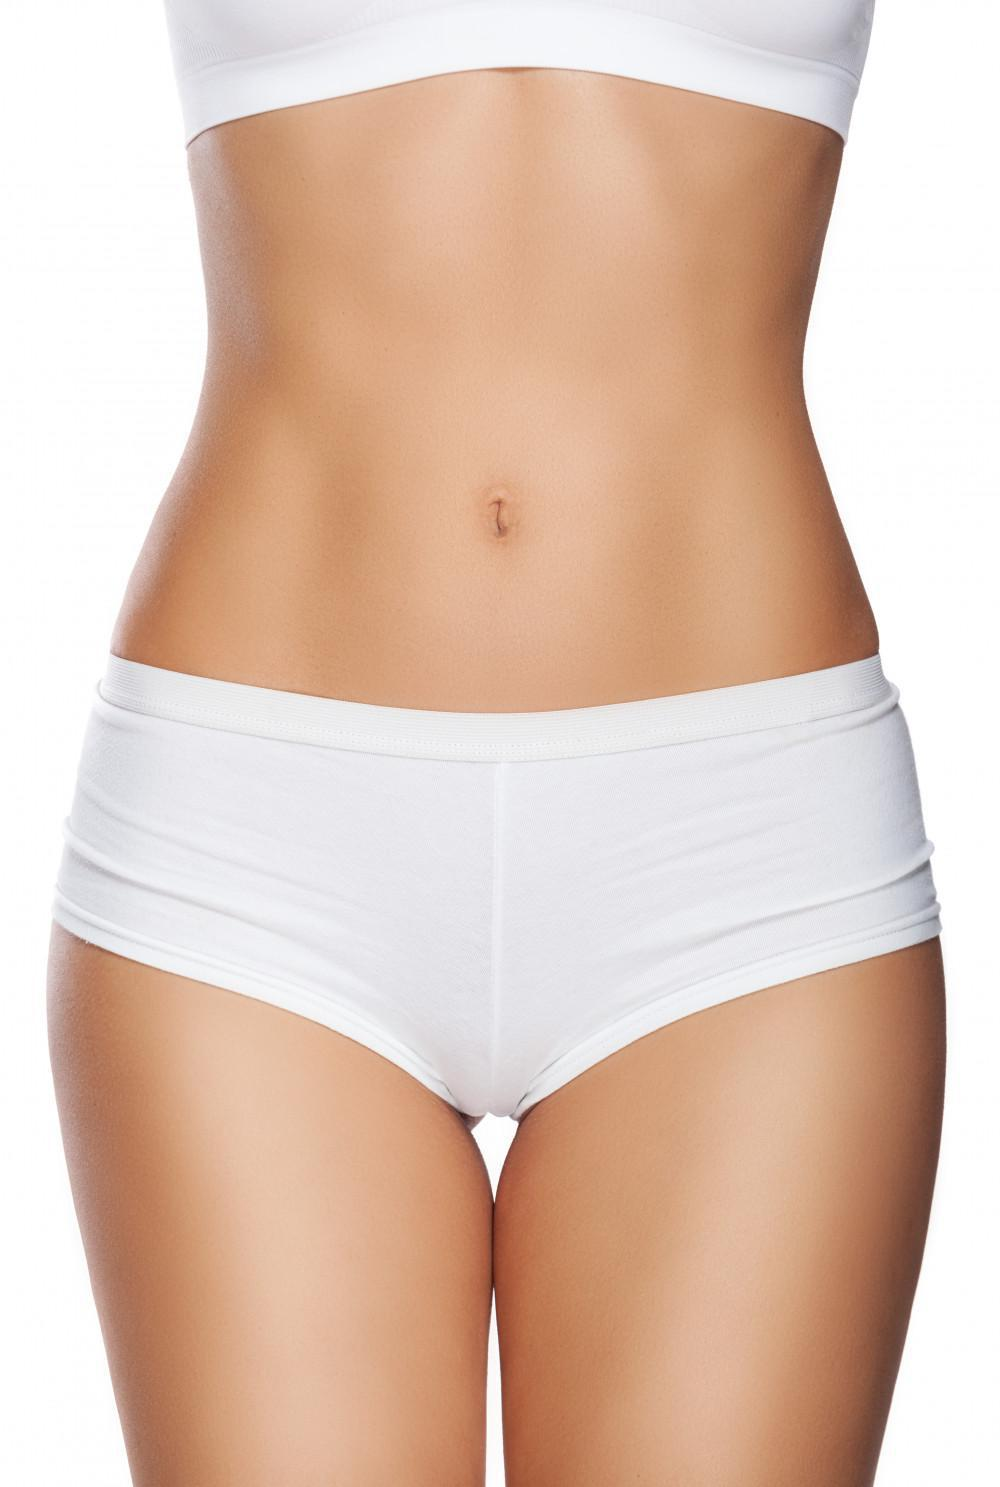 noninvasive body contouring, CoolSculpting, muffin top, Dr. Richardson